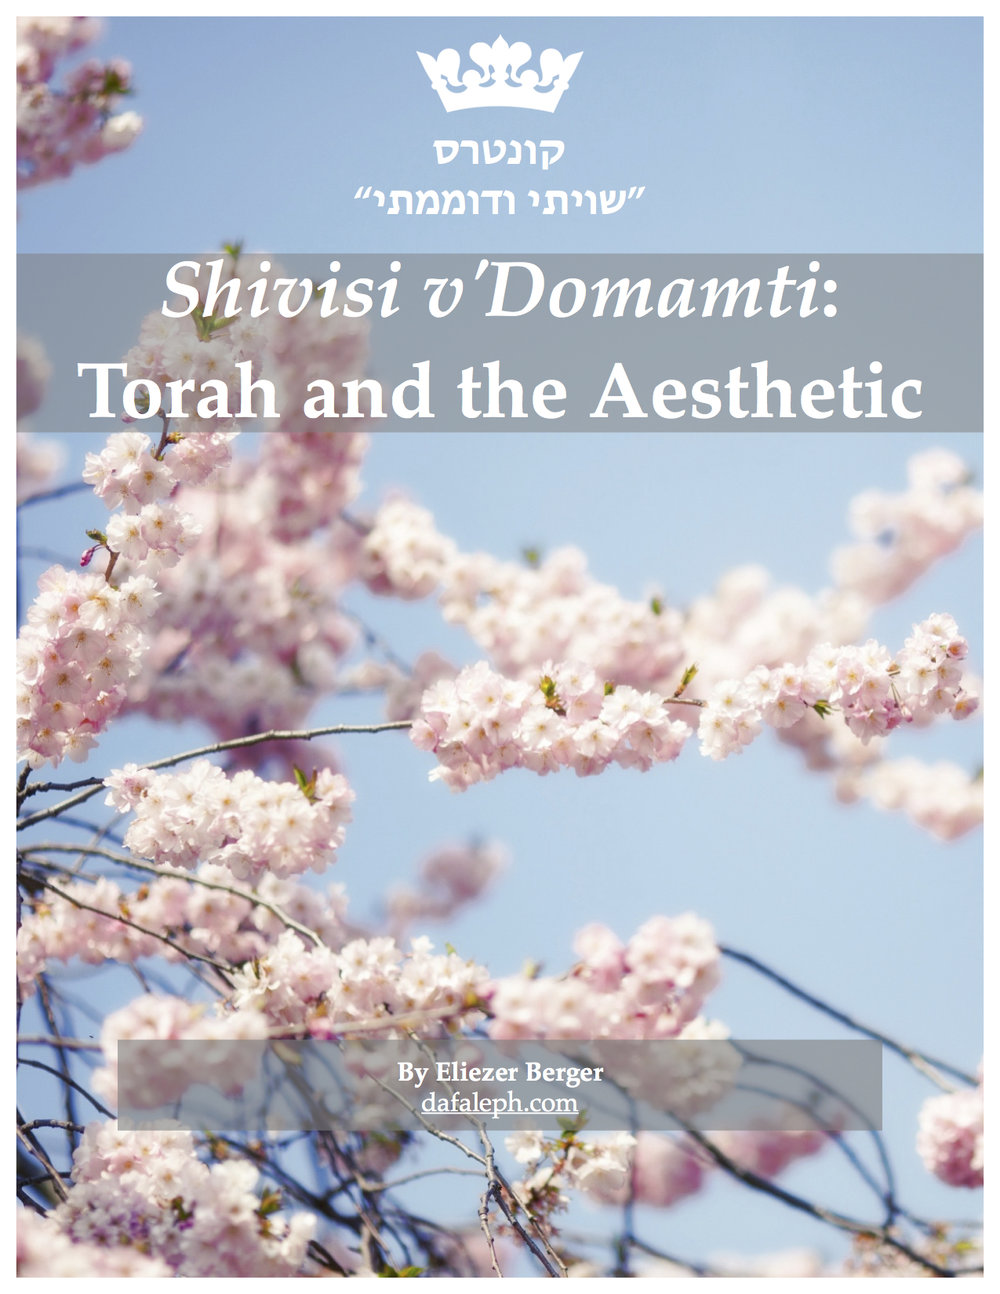 Shivisi v'Domamti: Torah and the Aesthetic by Eliezer Berger